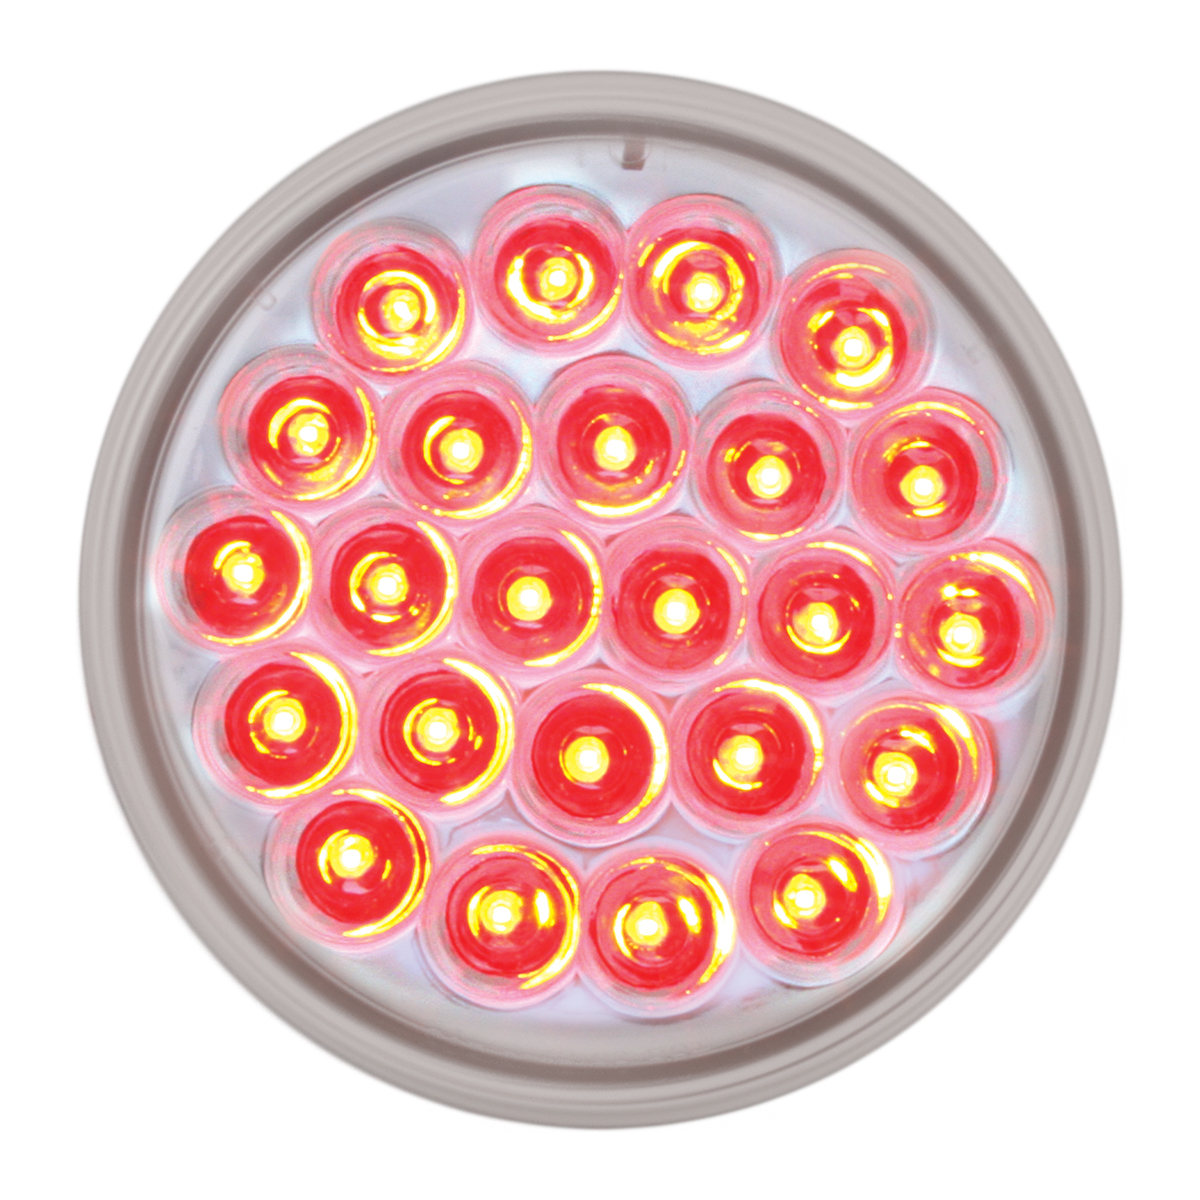 "#78274 4"" Round Pearl LED Flat - Red/Clear"